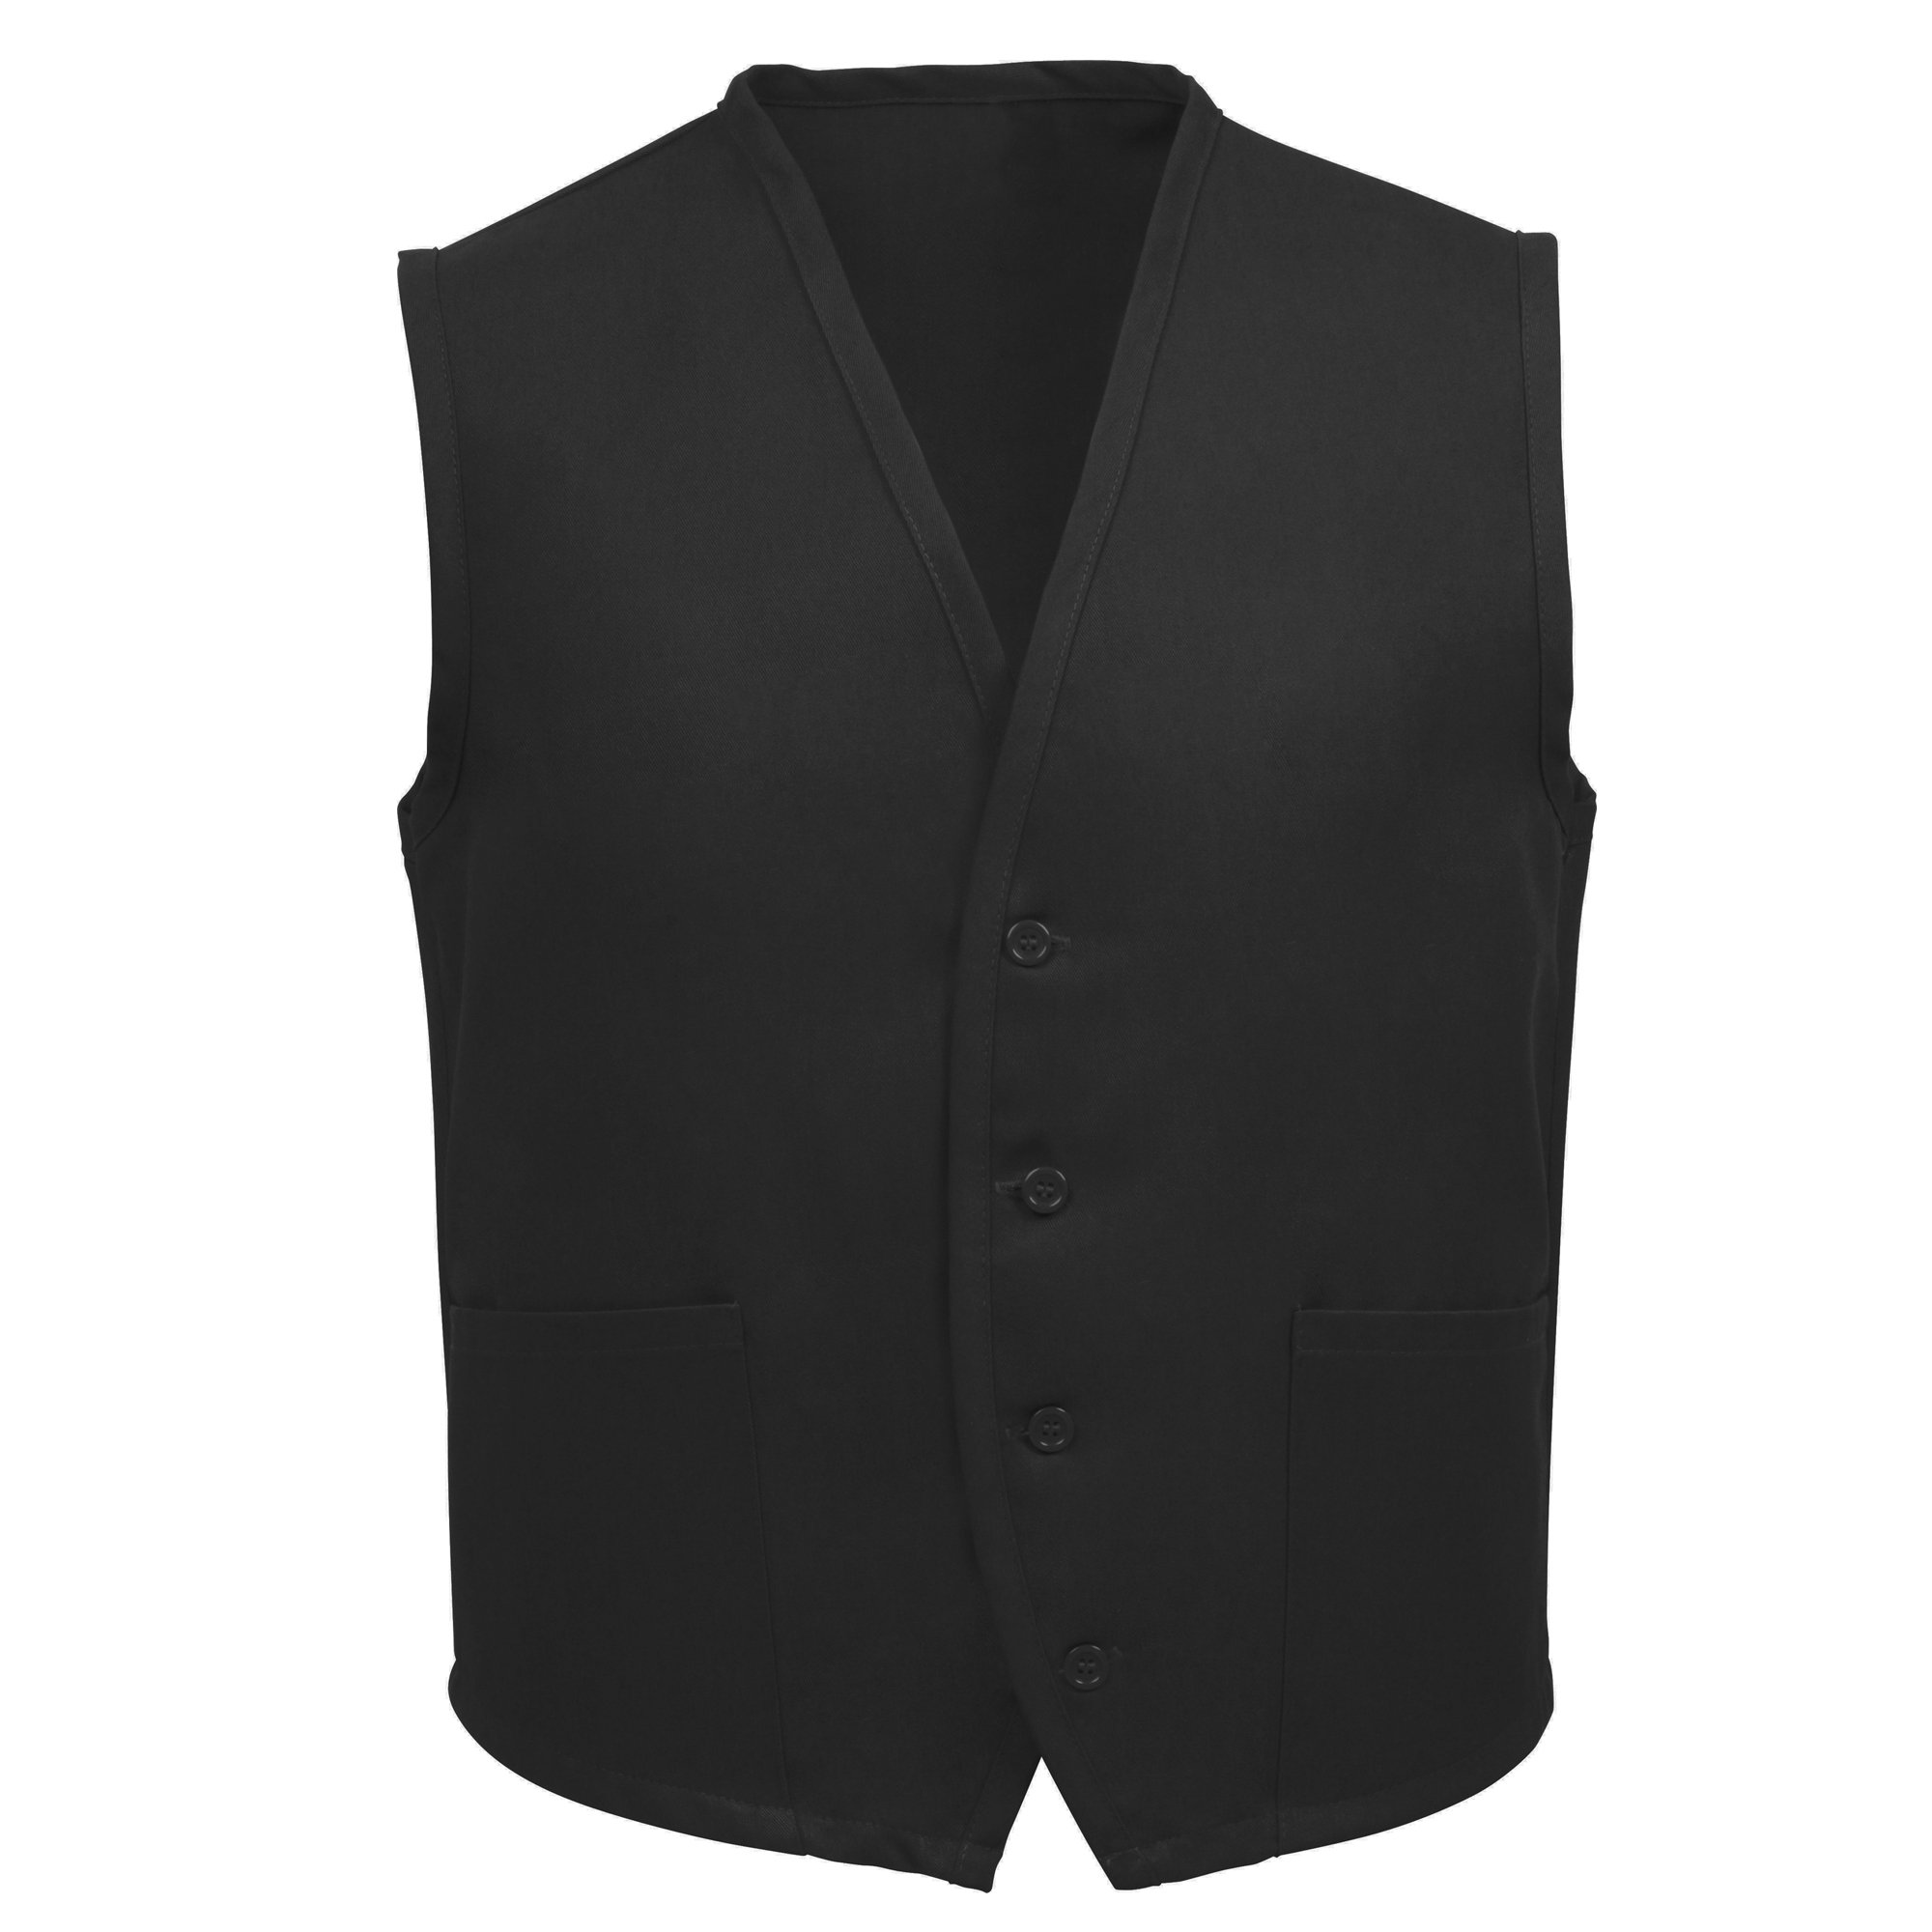 FAME 2 Pocket Vest (Black-Medium) K72-23324 by FAME